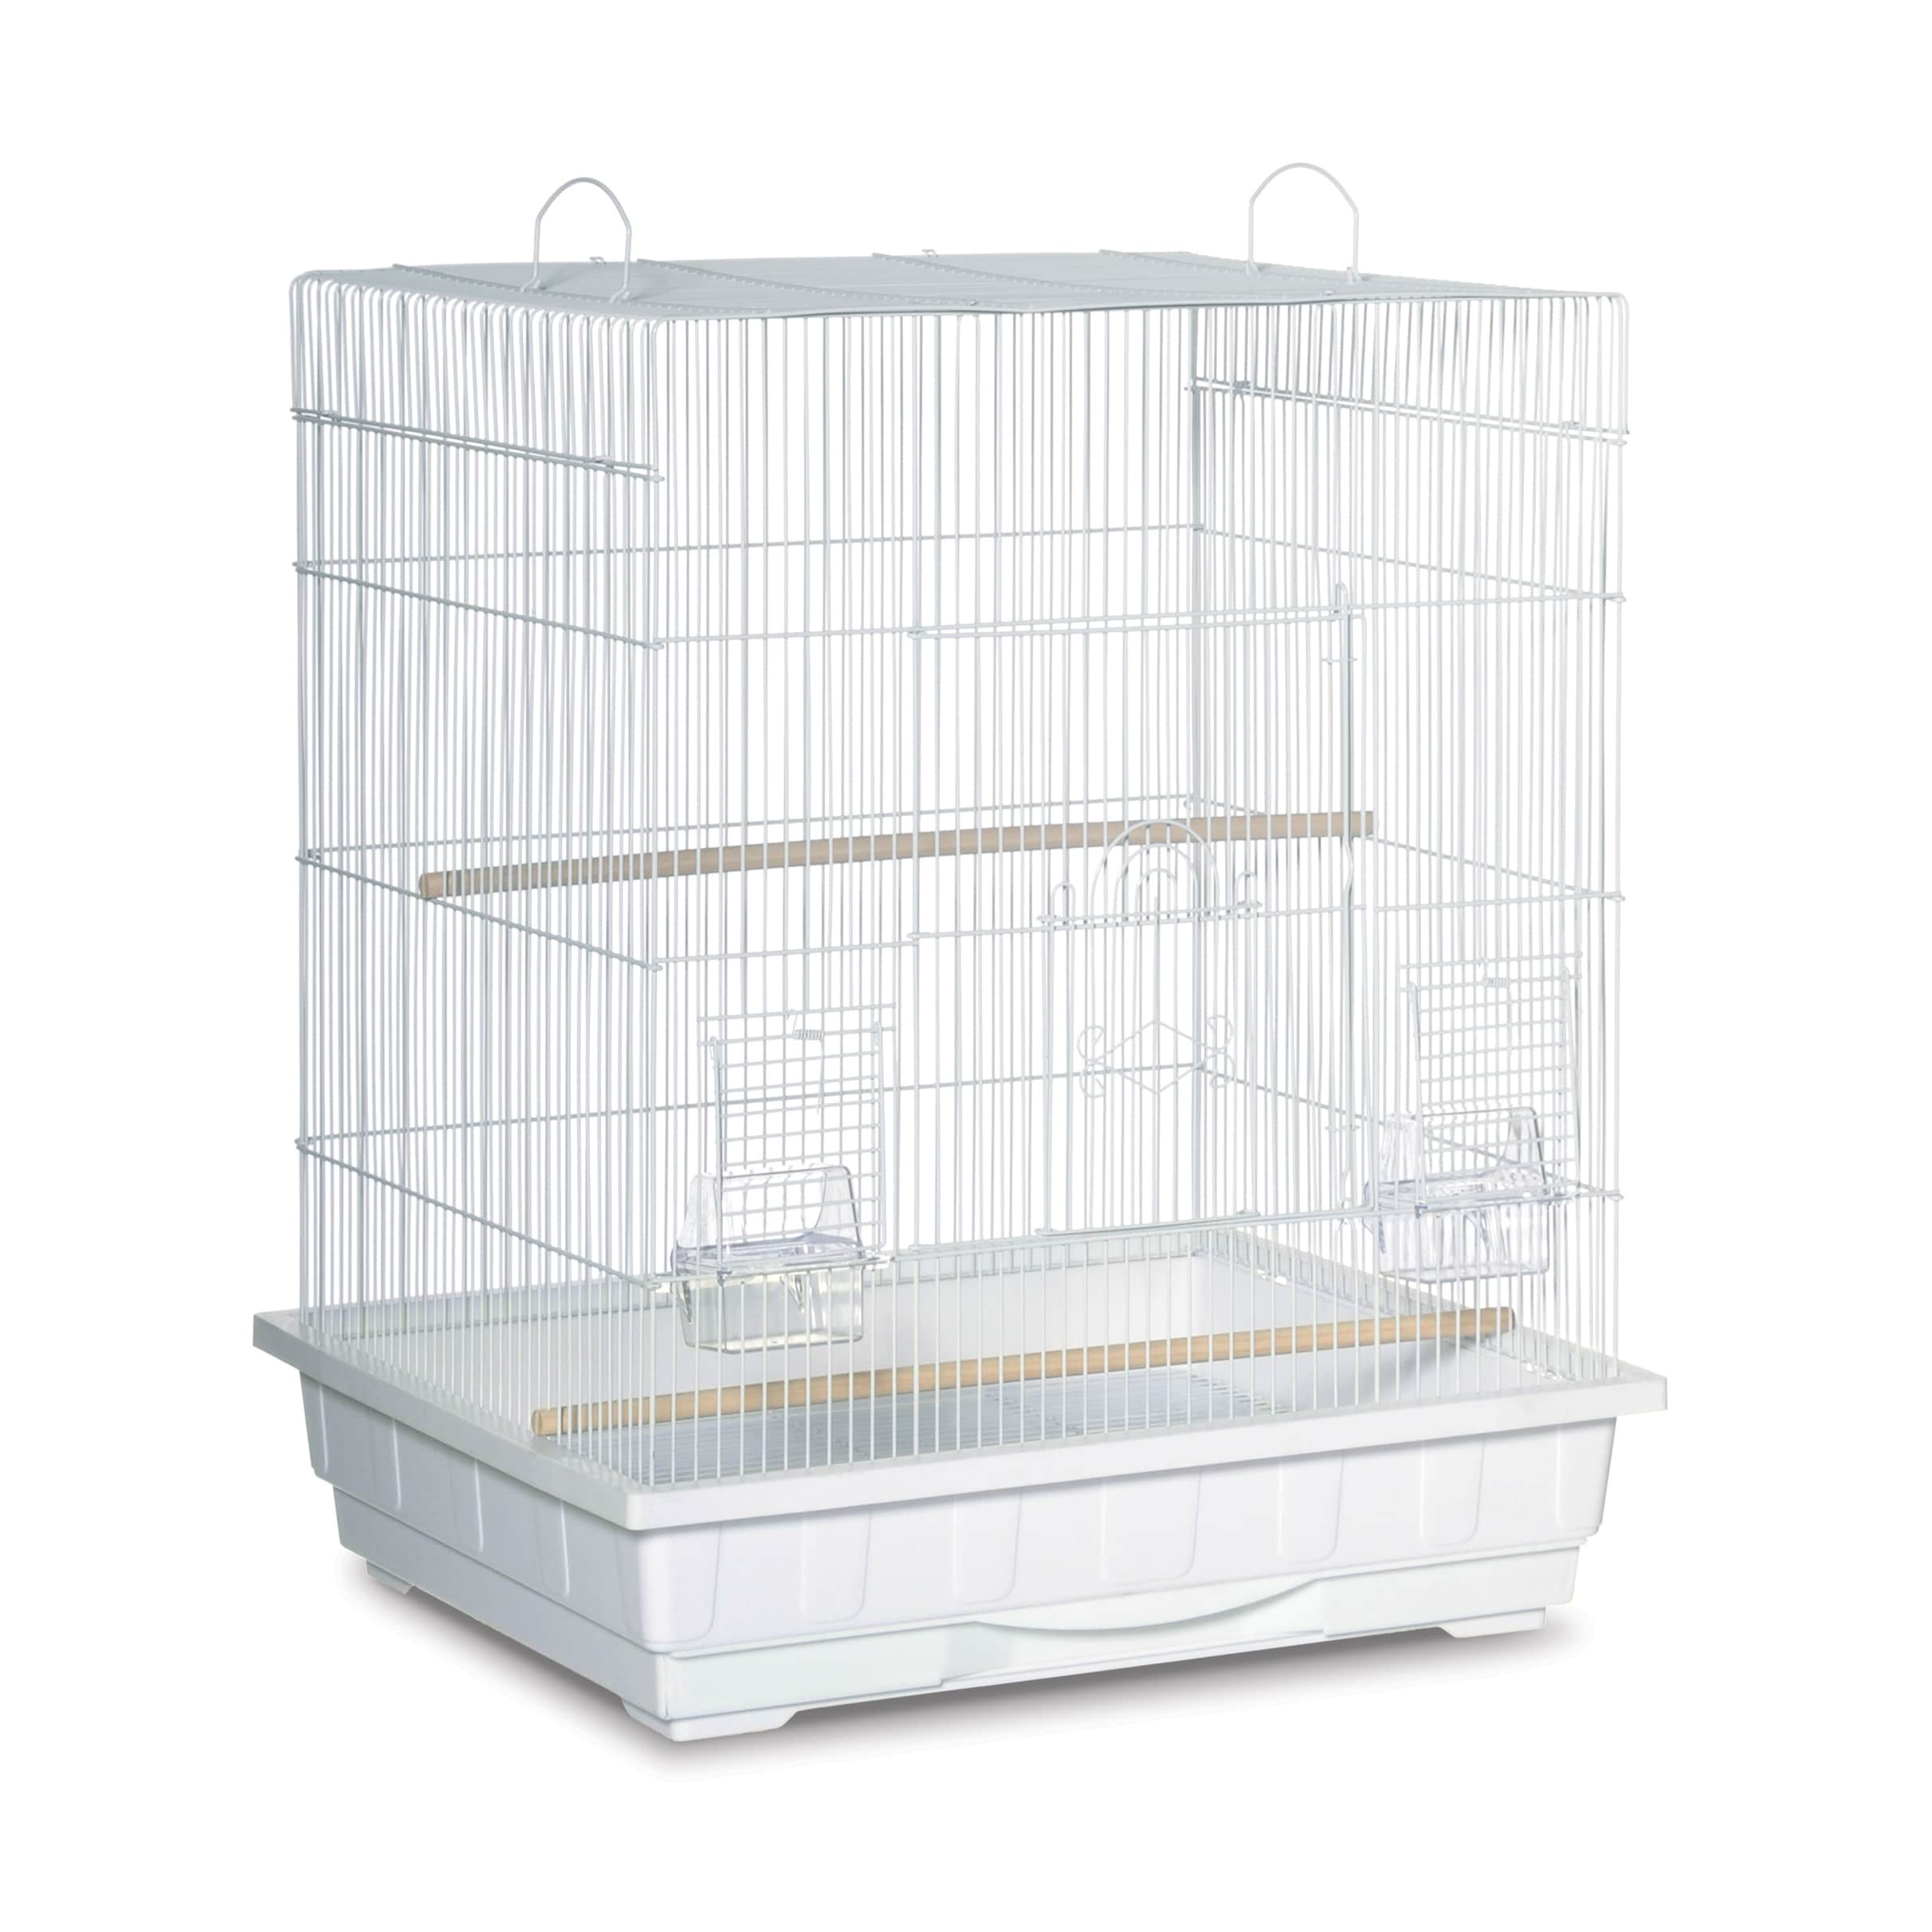 Prevue Pet Products Square Top Parakeet Cage (White)